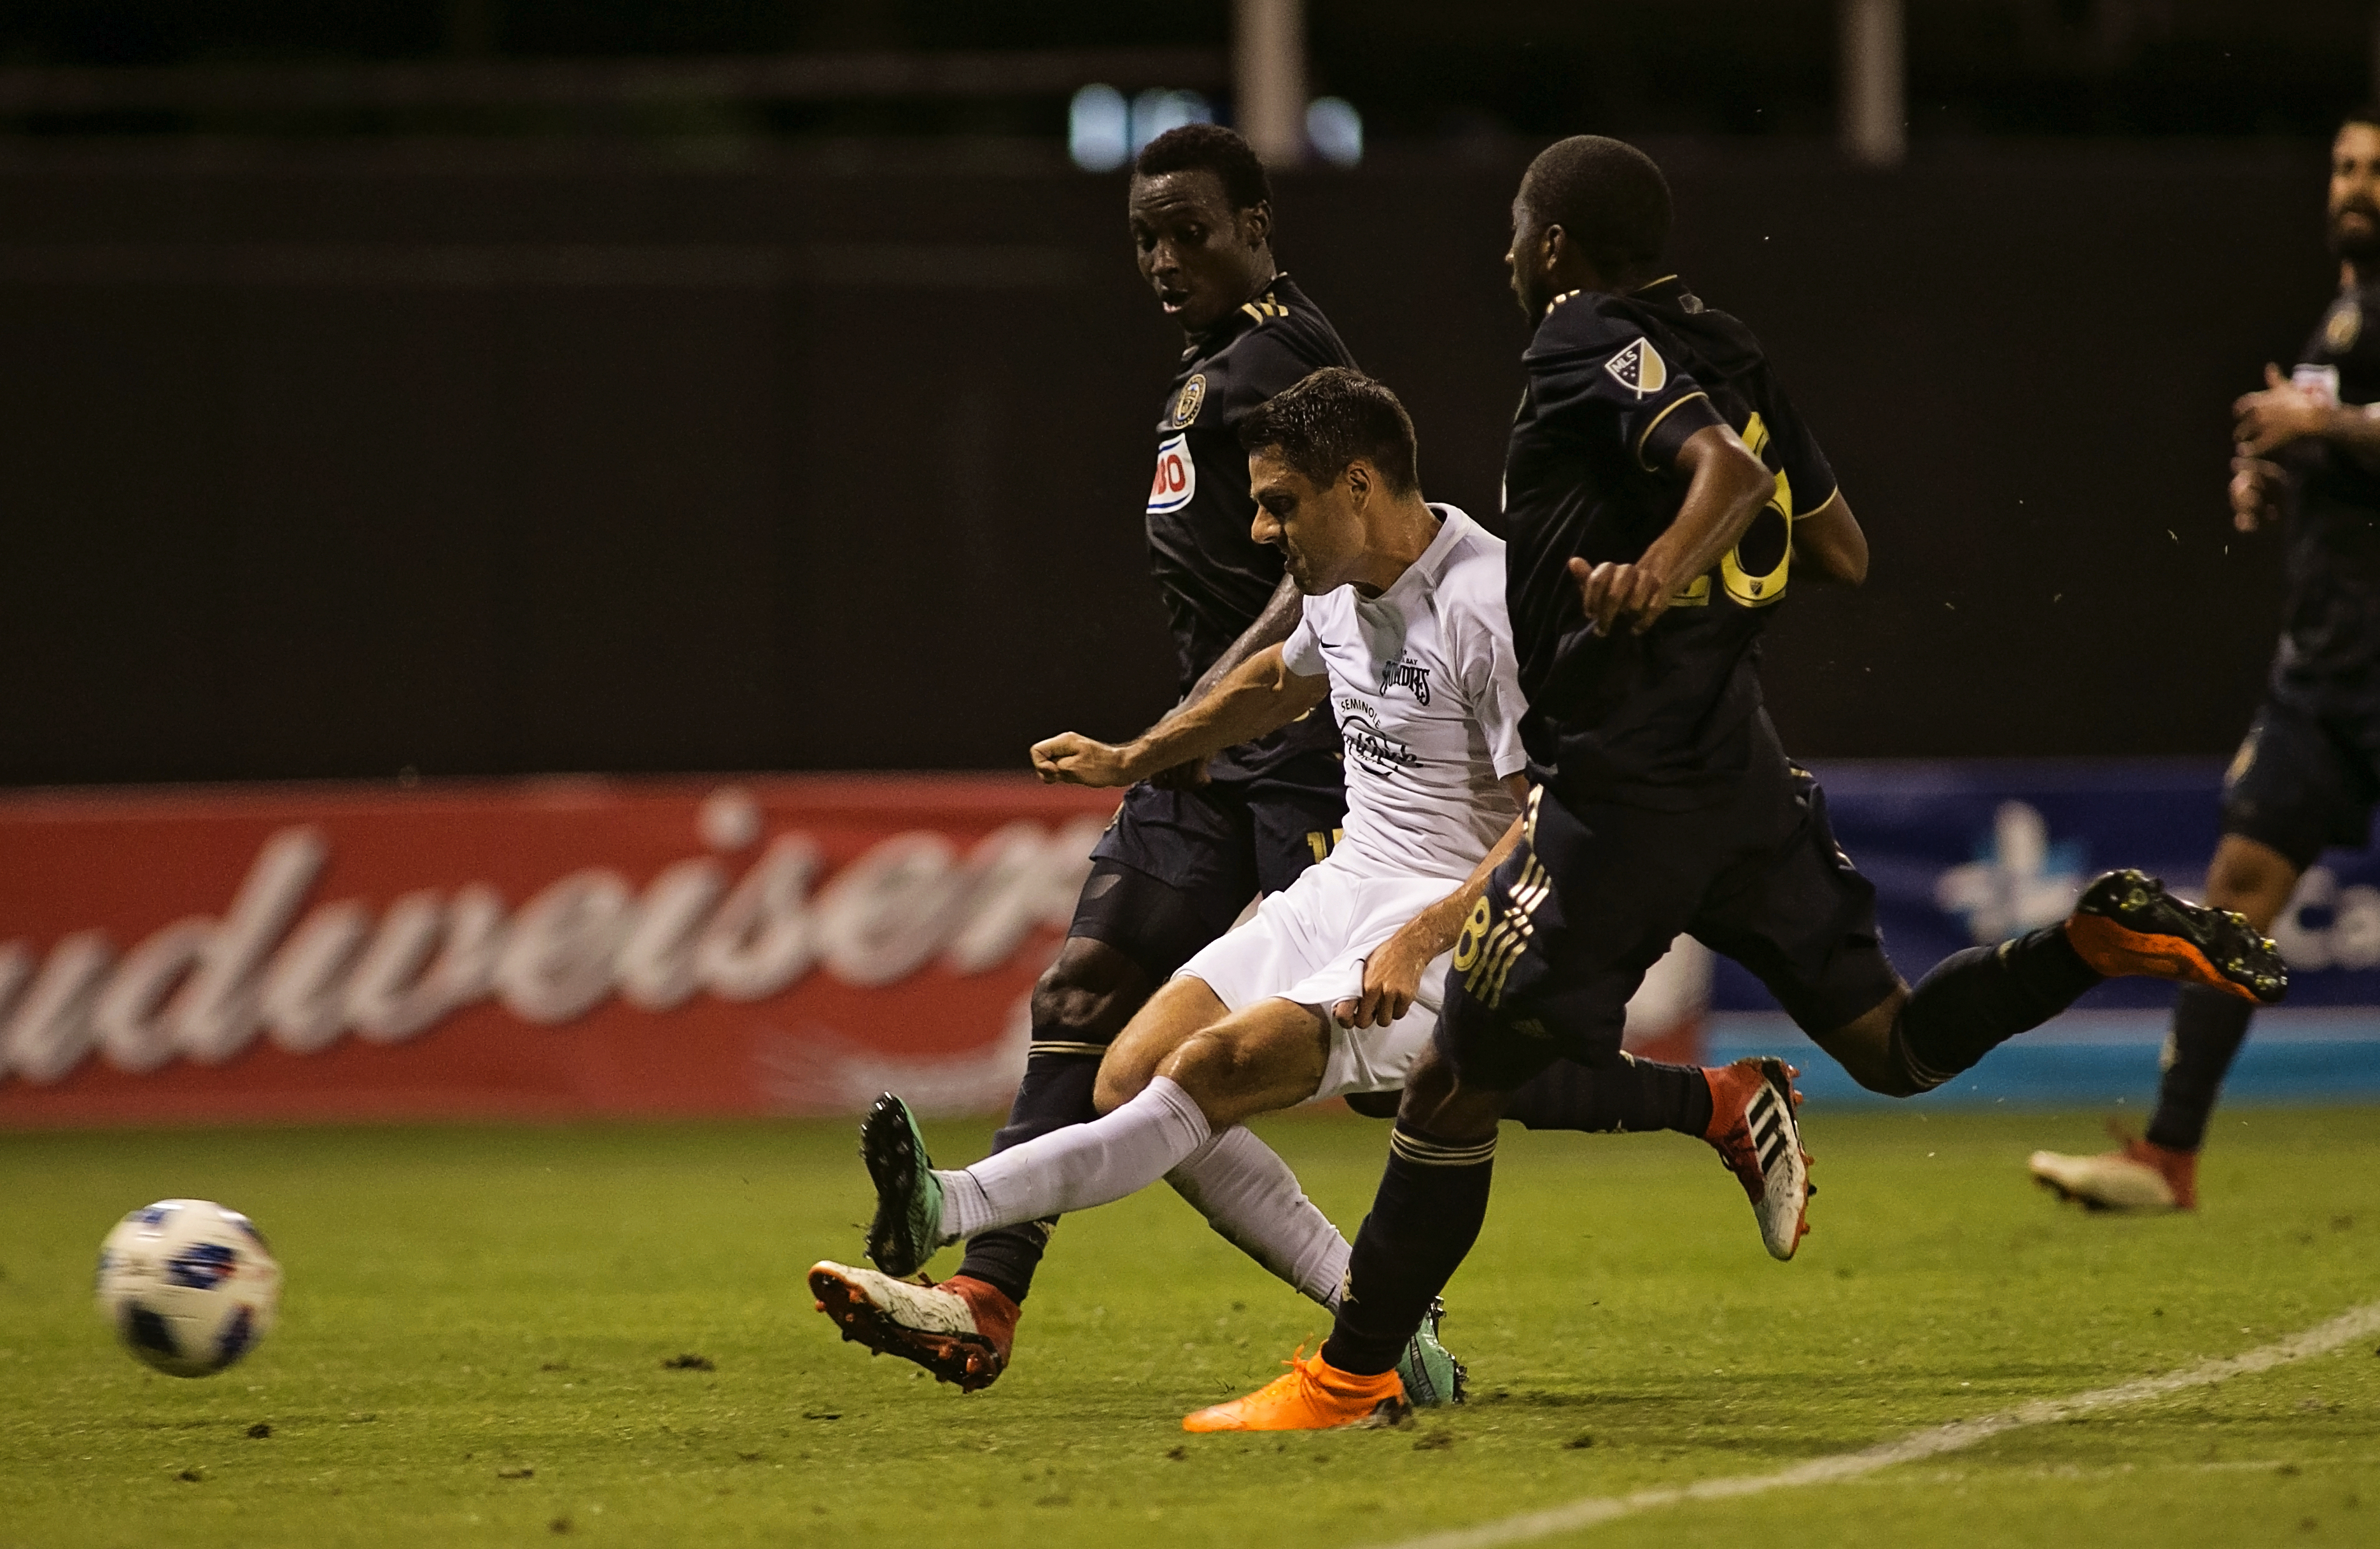 Nanchoff scored the second goal for the Rowdies./CARMEN MANDATO